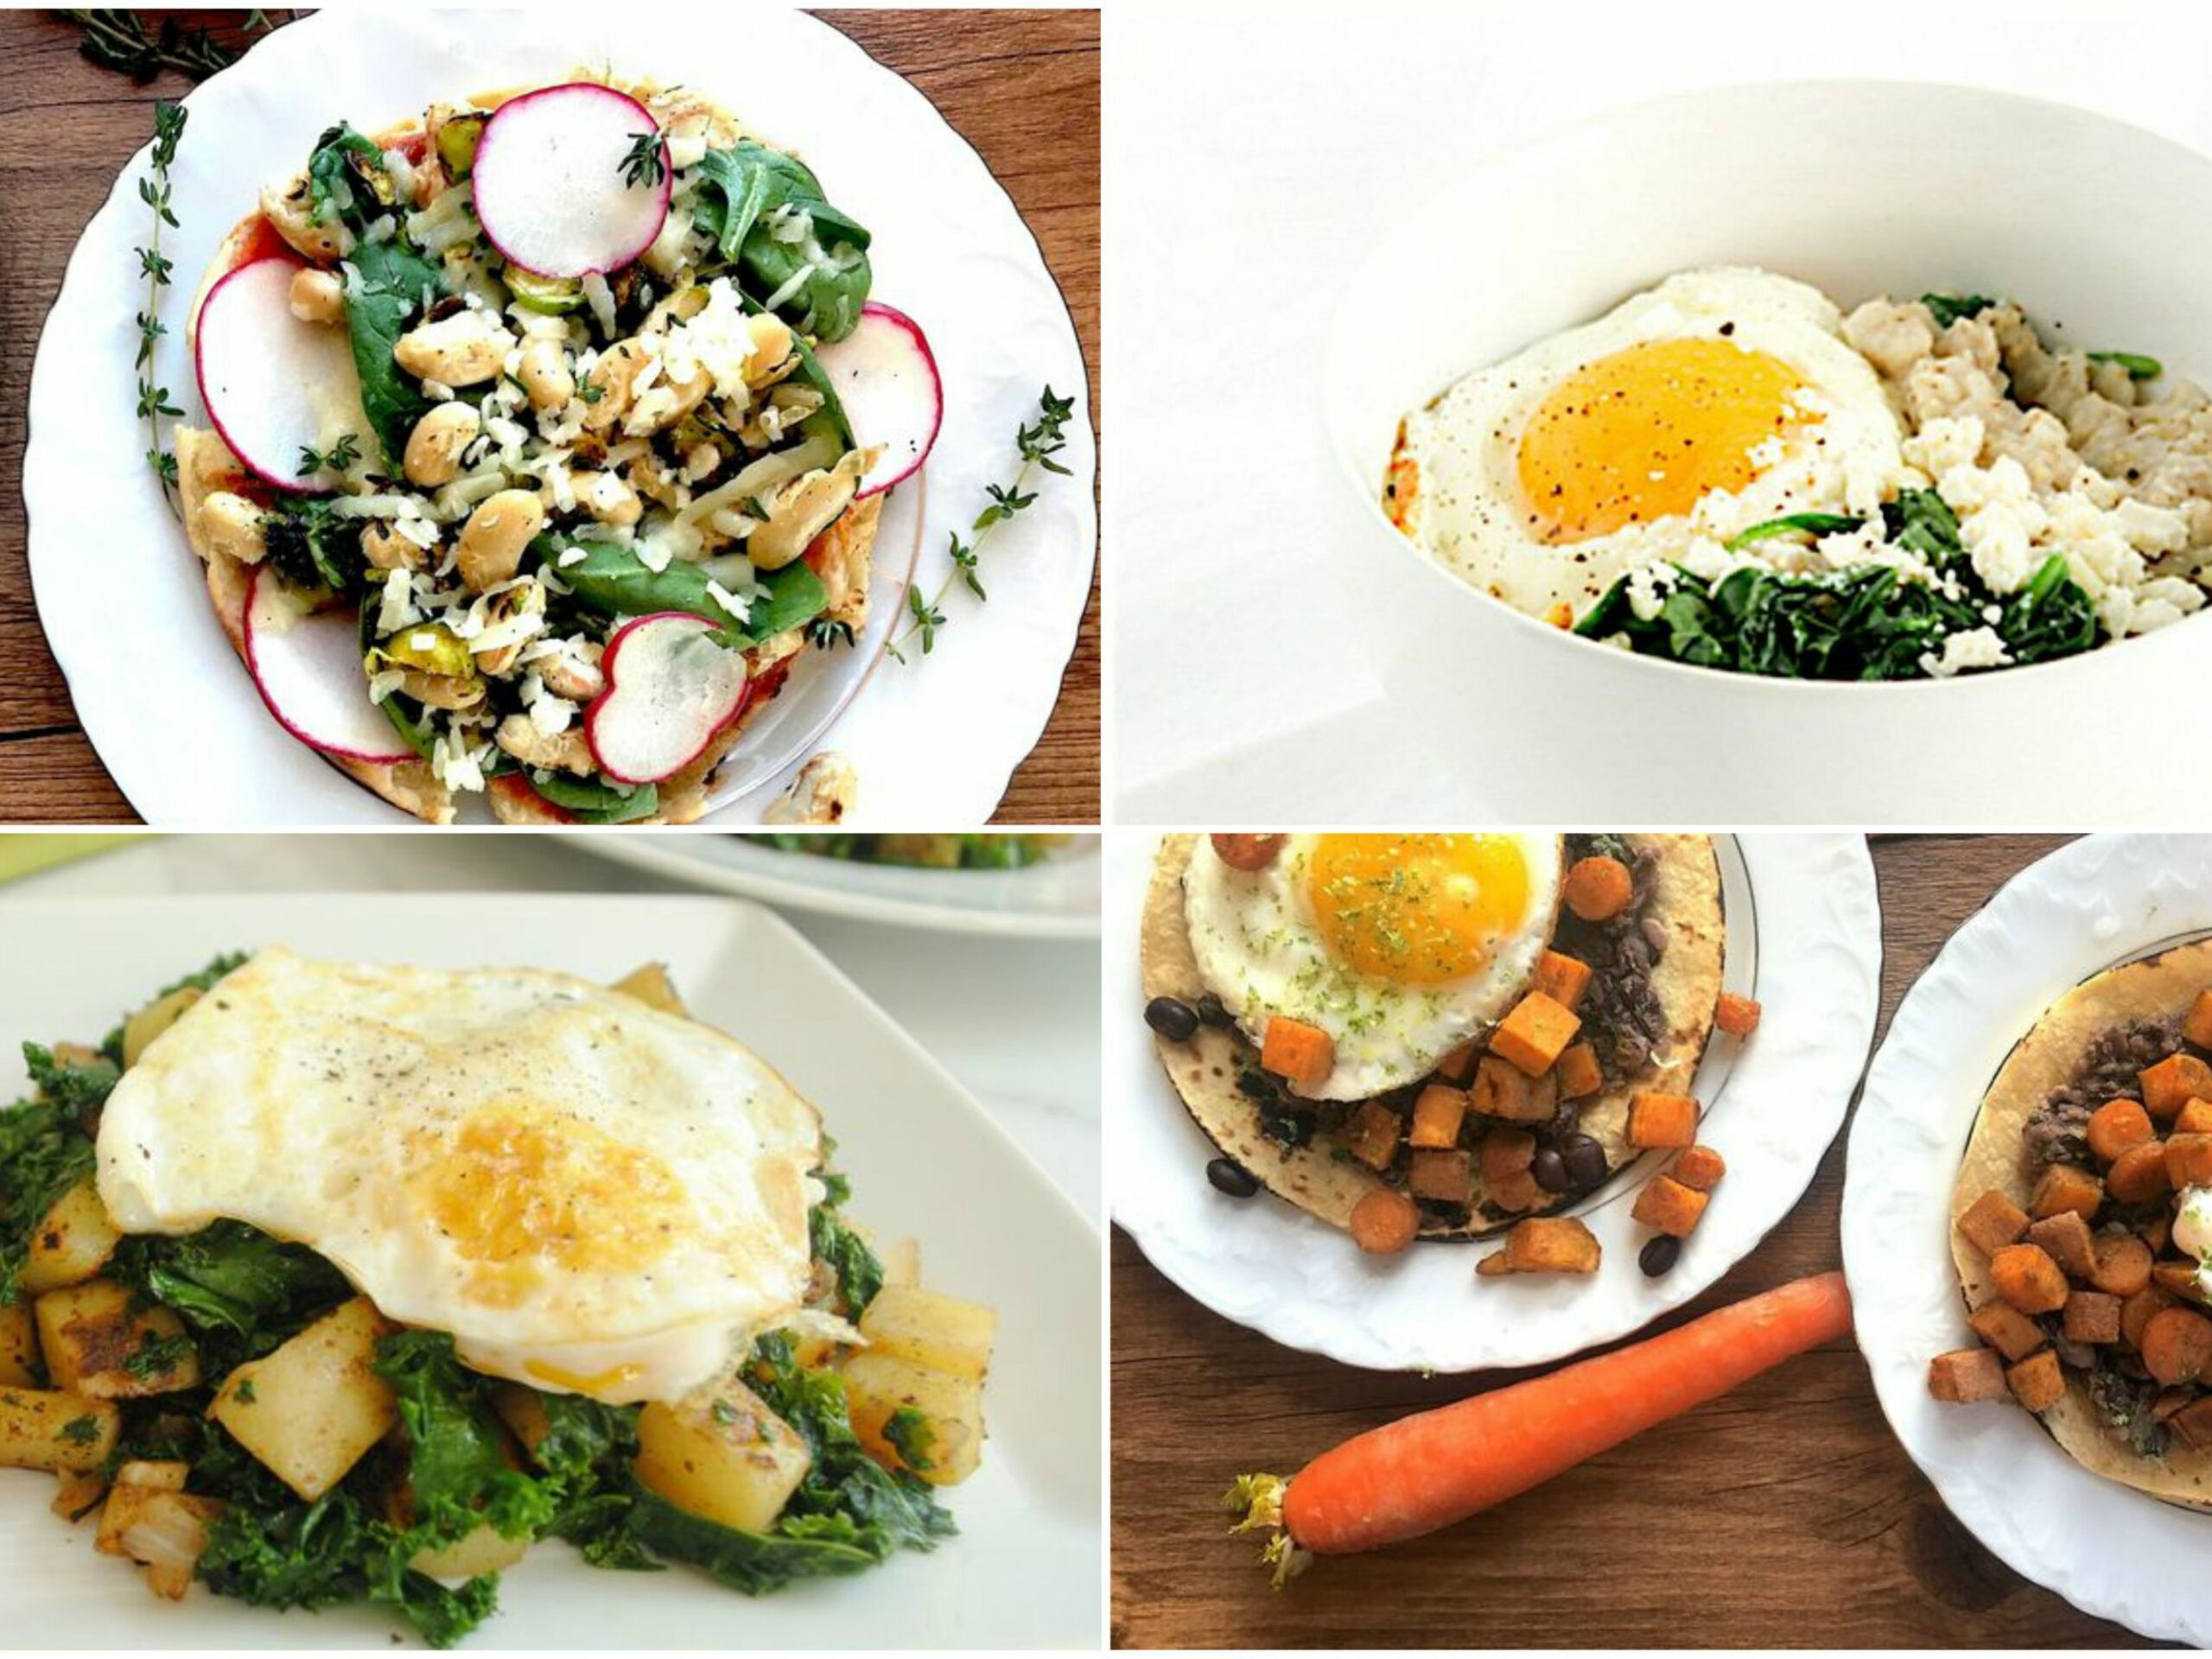 12 Iron-Rich Vegetarian Meals - Simple Recipes High In Iron